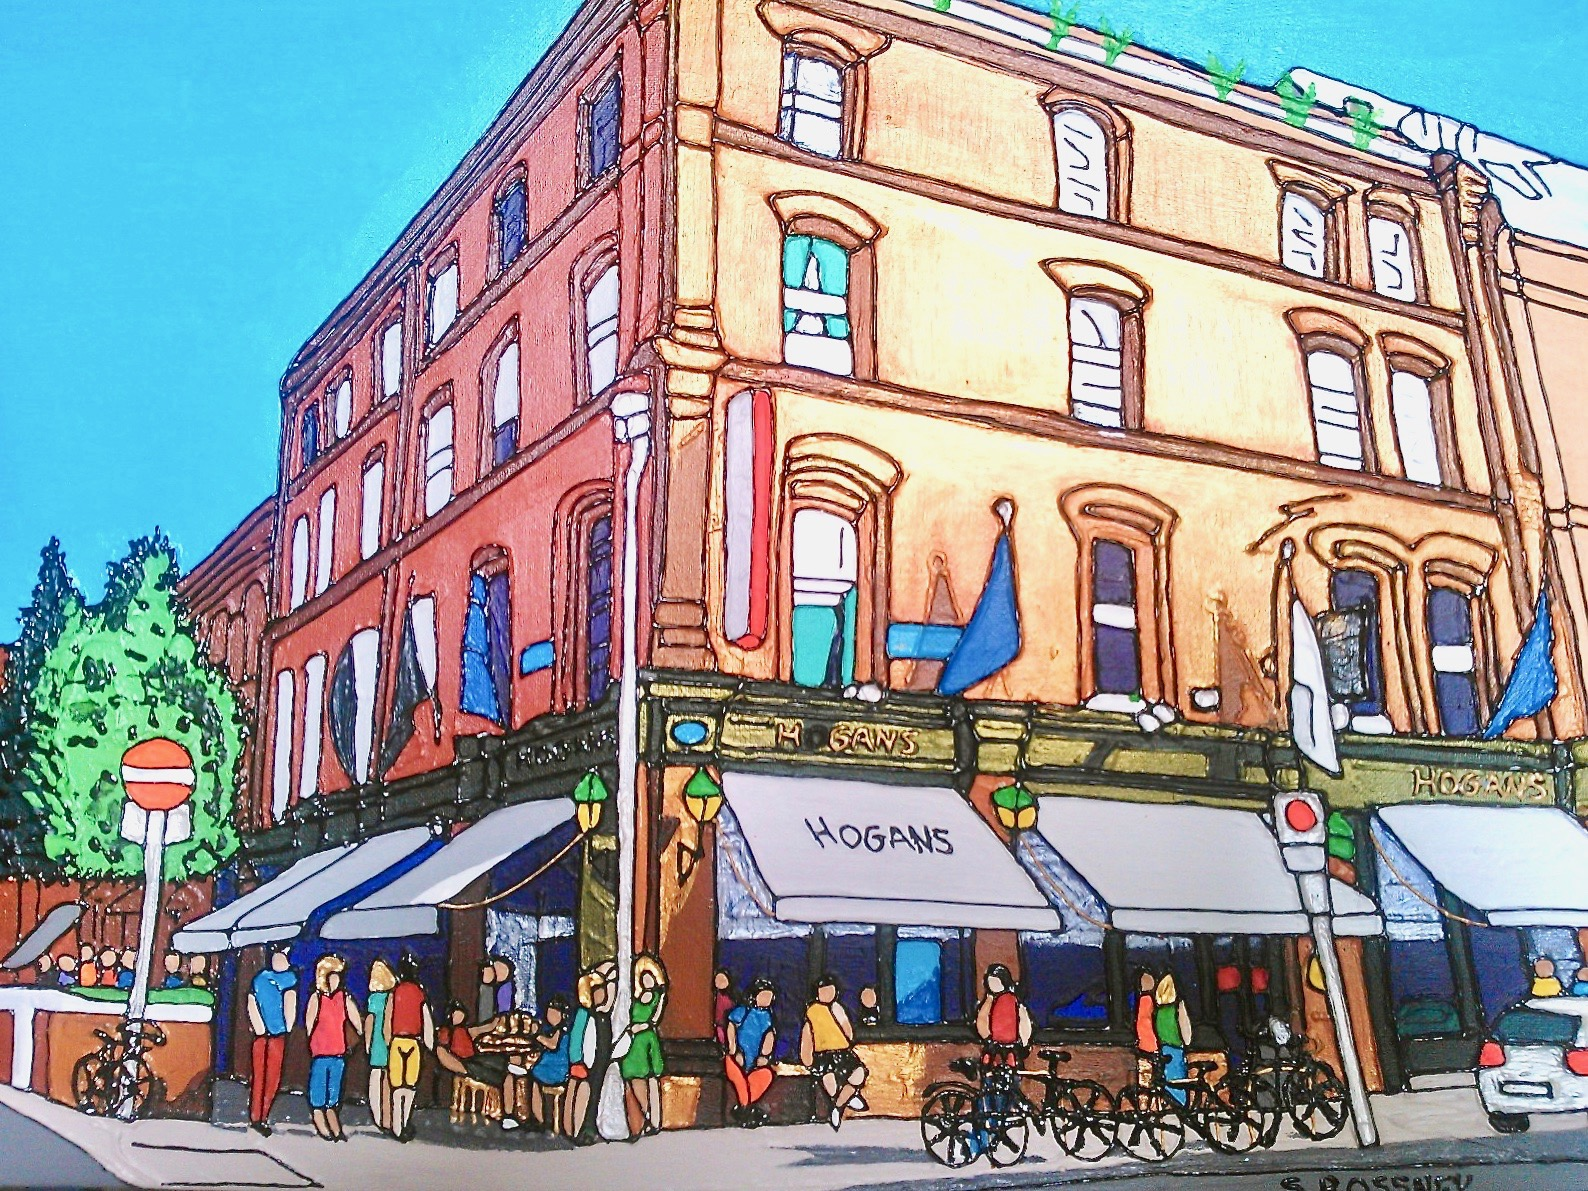 Illustration of Hogan's Bar in Dublin